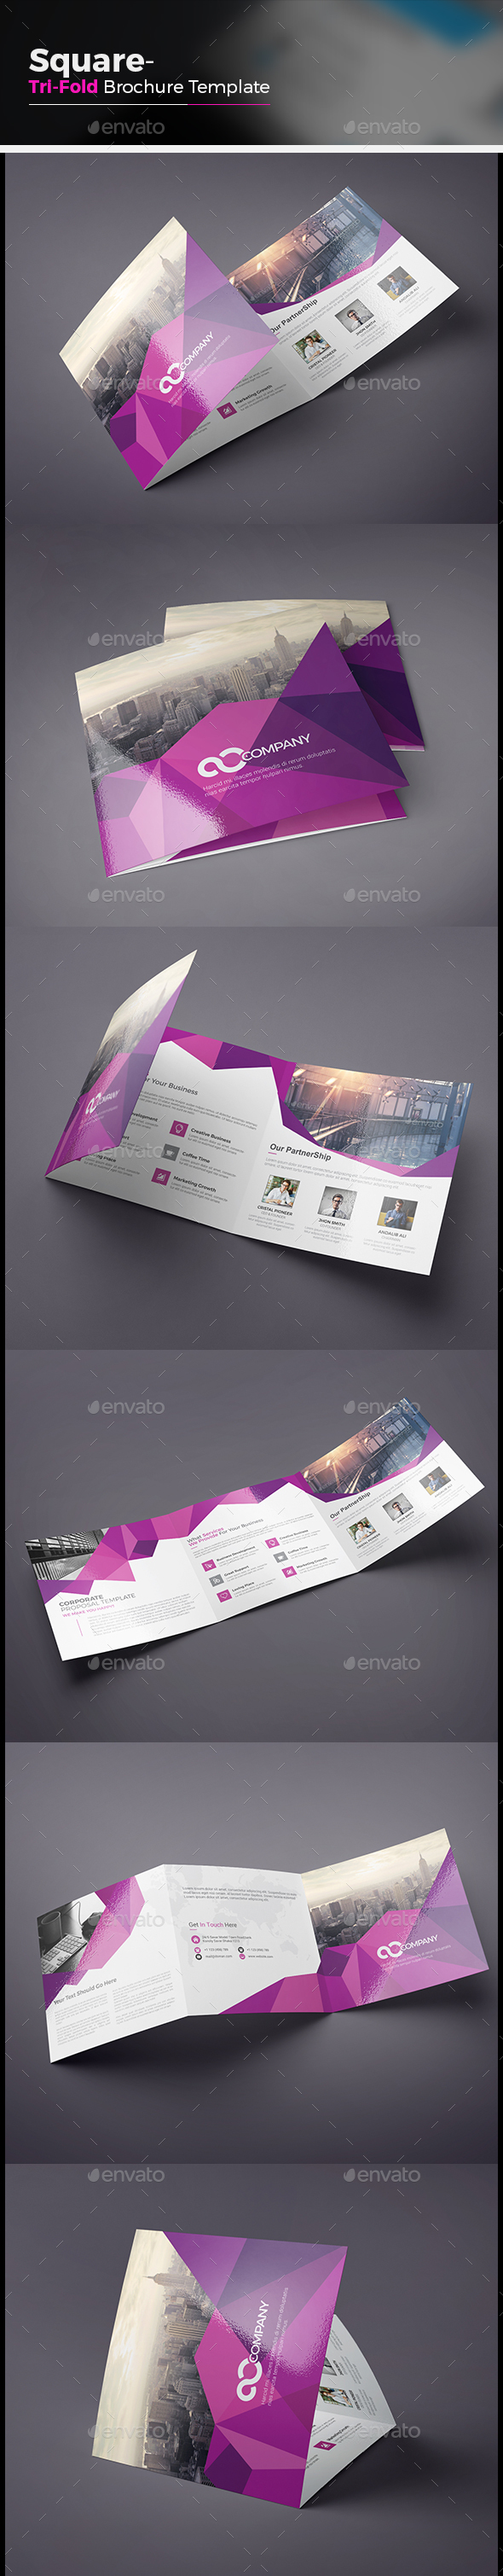 Abstract Square Tri fold Brochure - Corporate Brochures